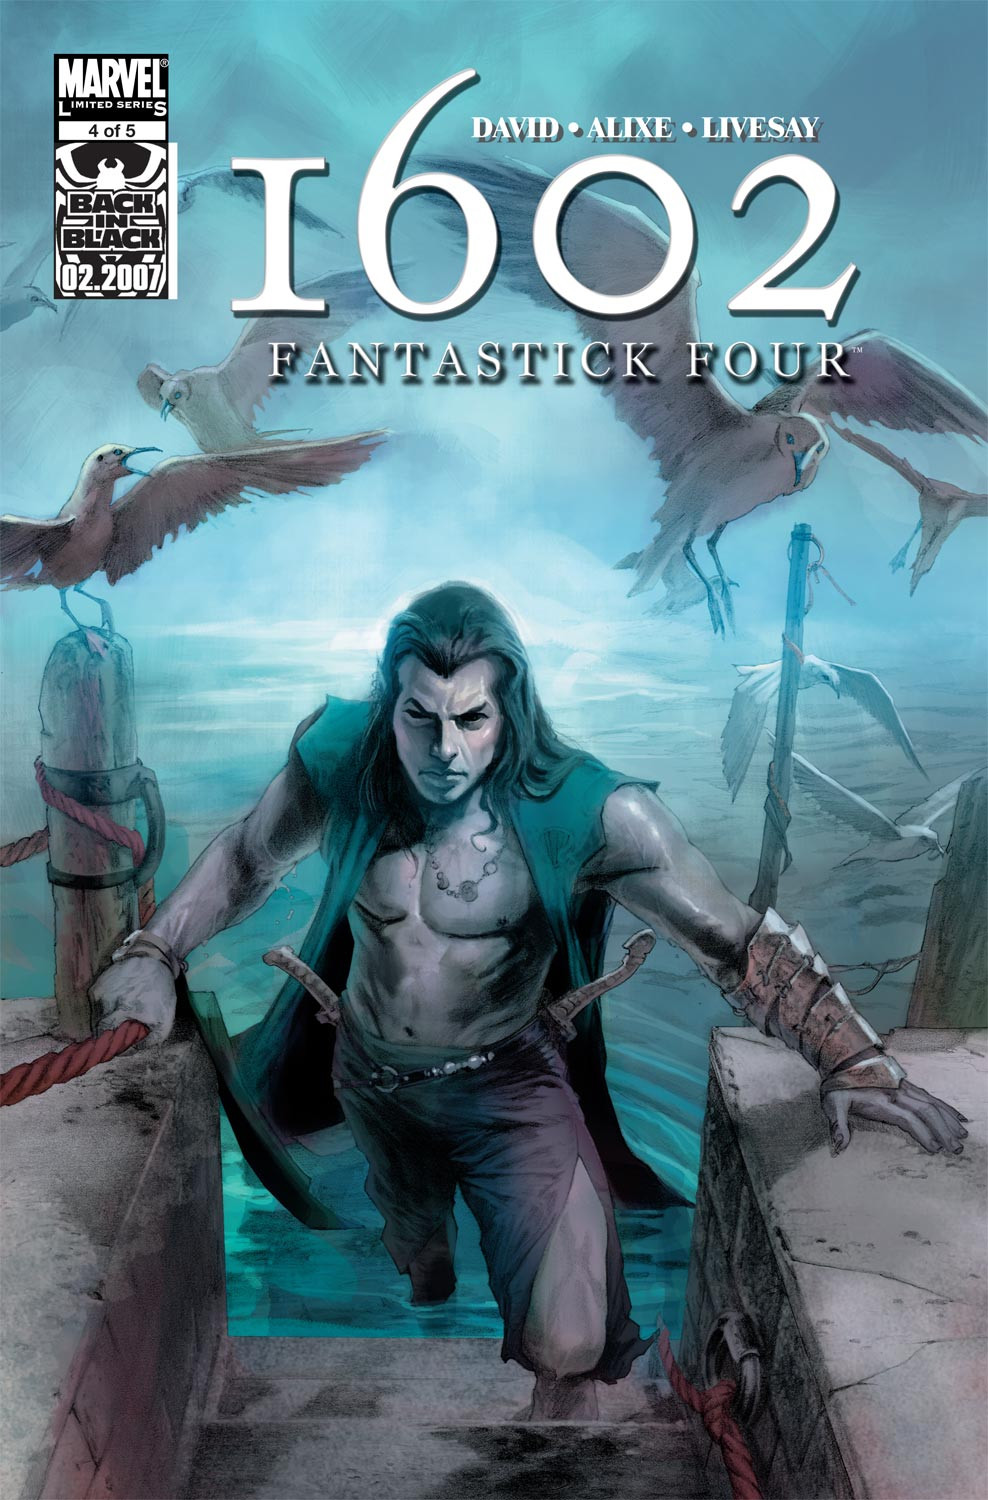 Marvel 1602: Fantastick Four Vol 1 4